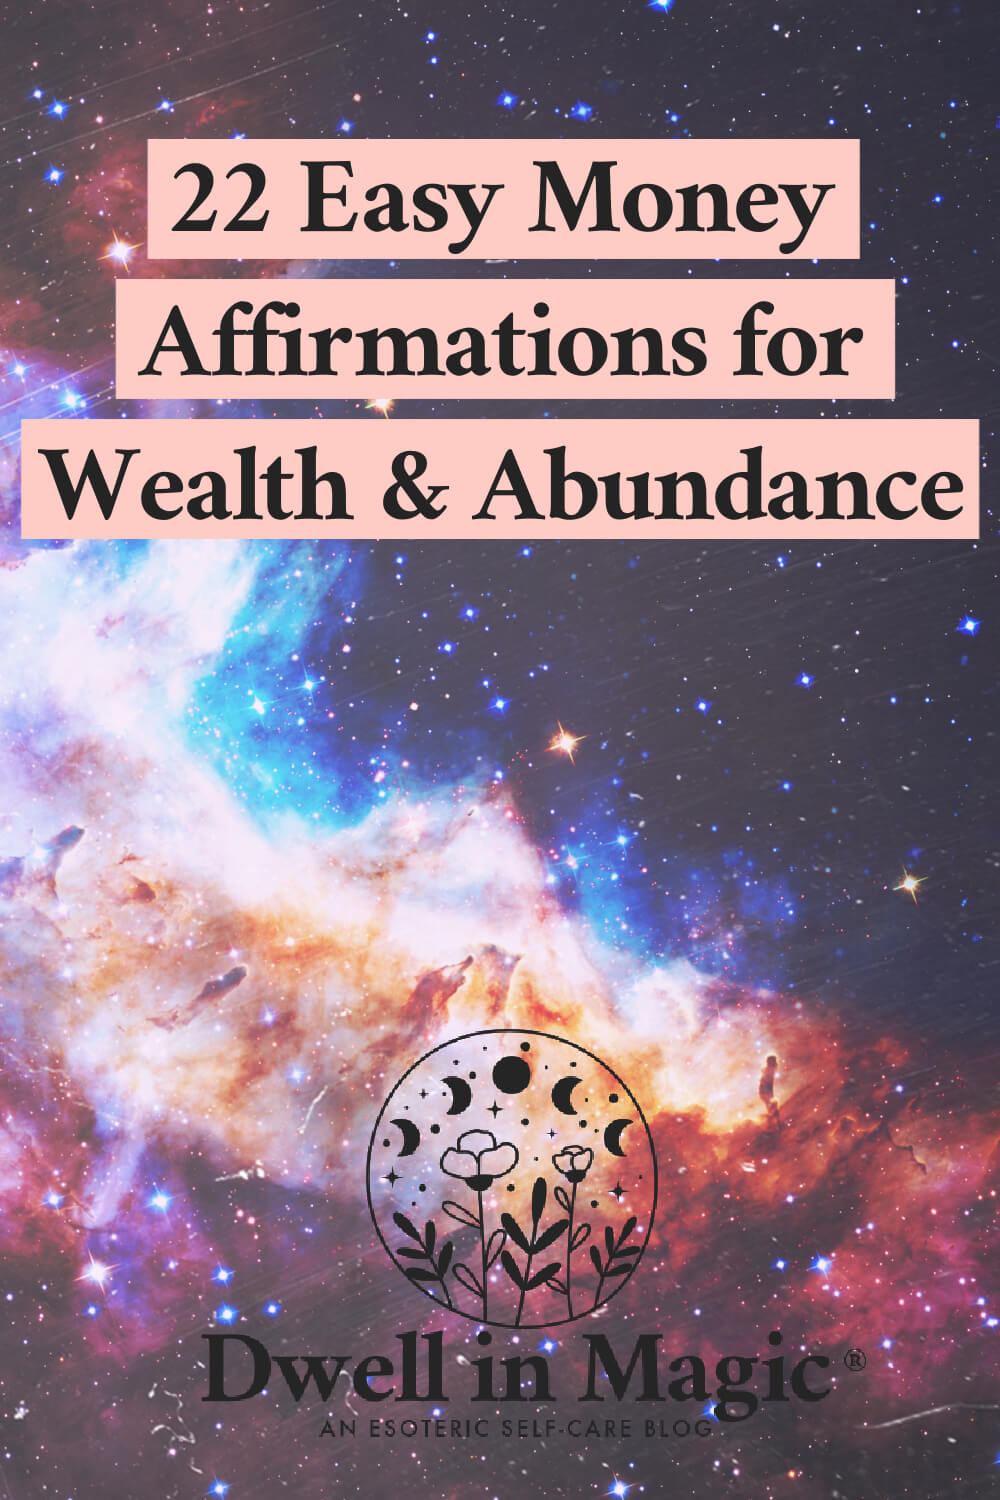 Easy money affirmations for wealth and abundance